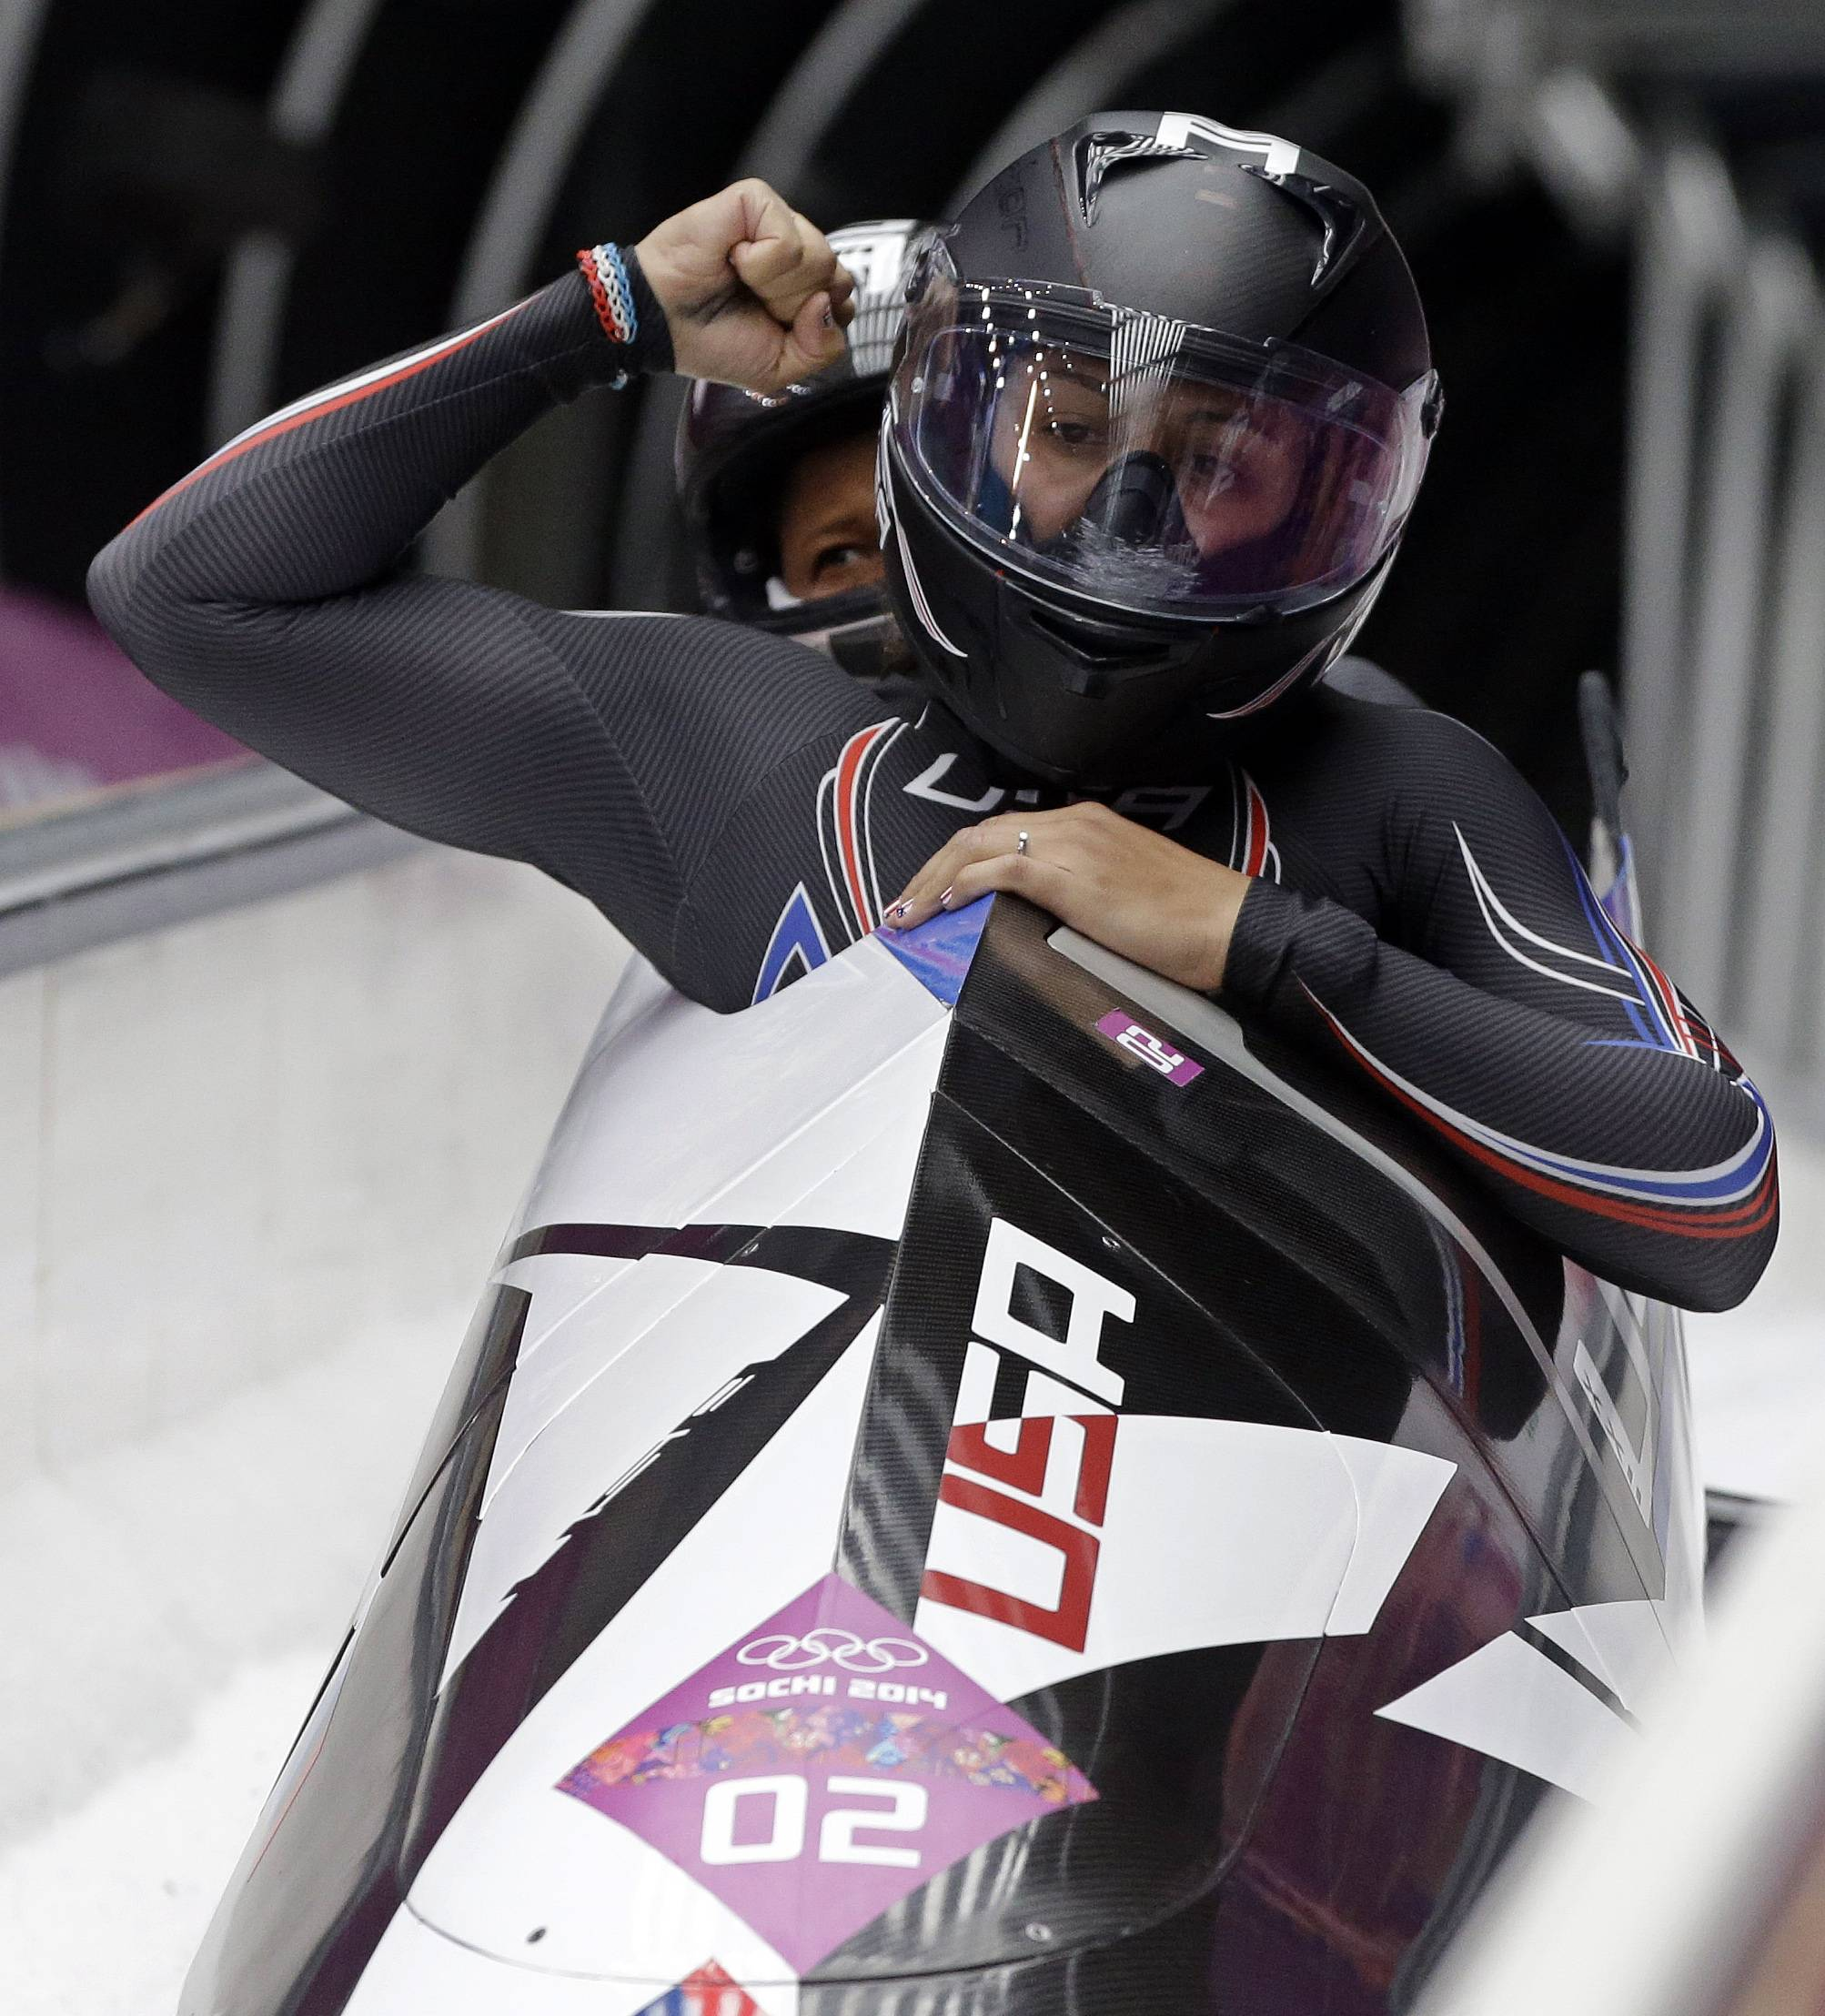 USA-1 teammates Elana Meyers and Lauryn Williams hold a comfortable lead over Canada-1 and USA-2 after two runs of women's Olympic bobsled.